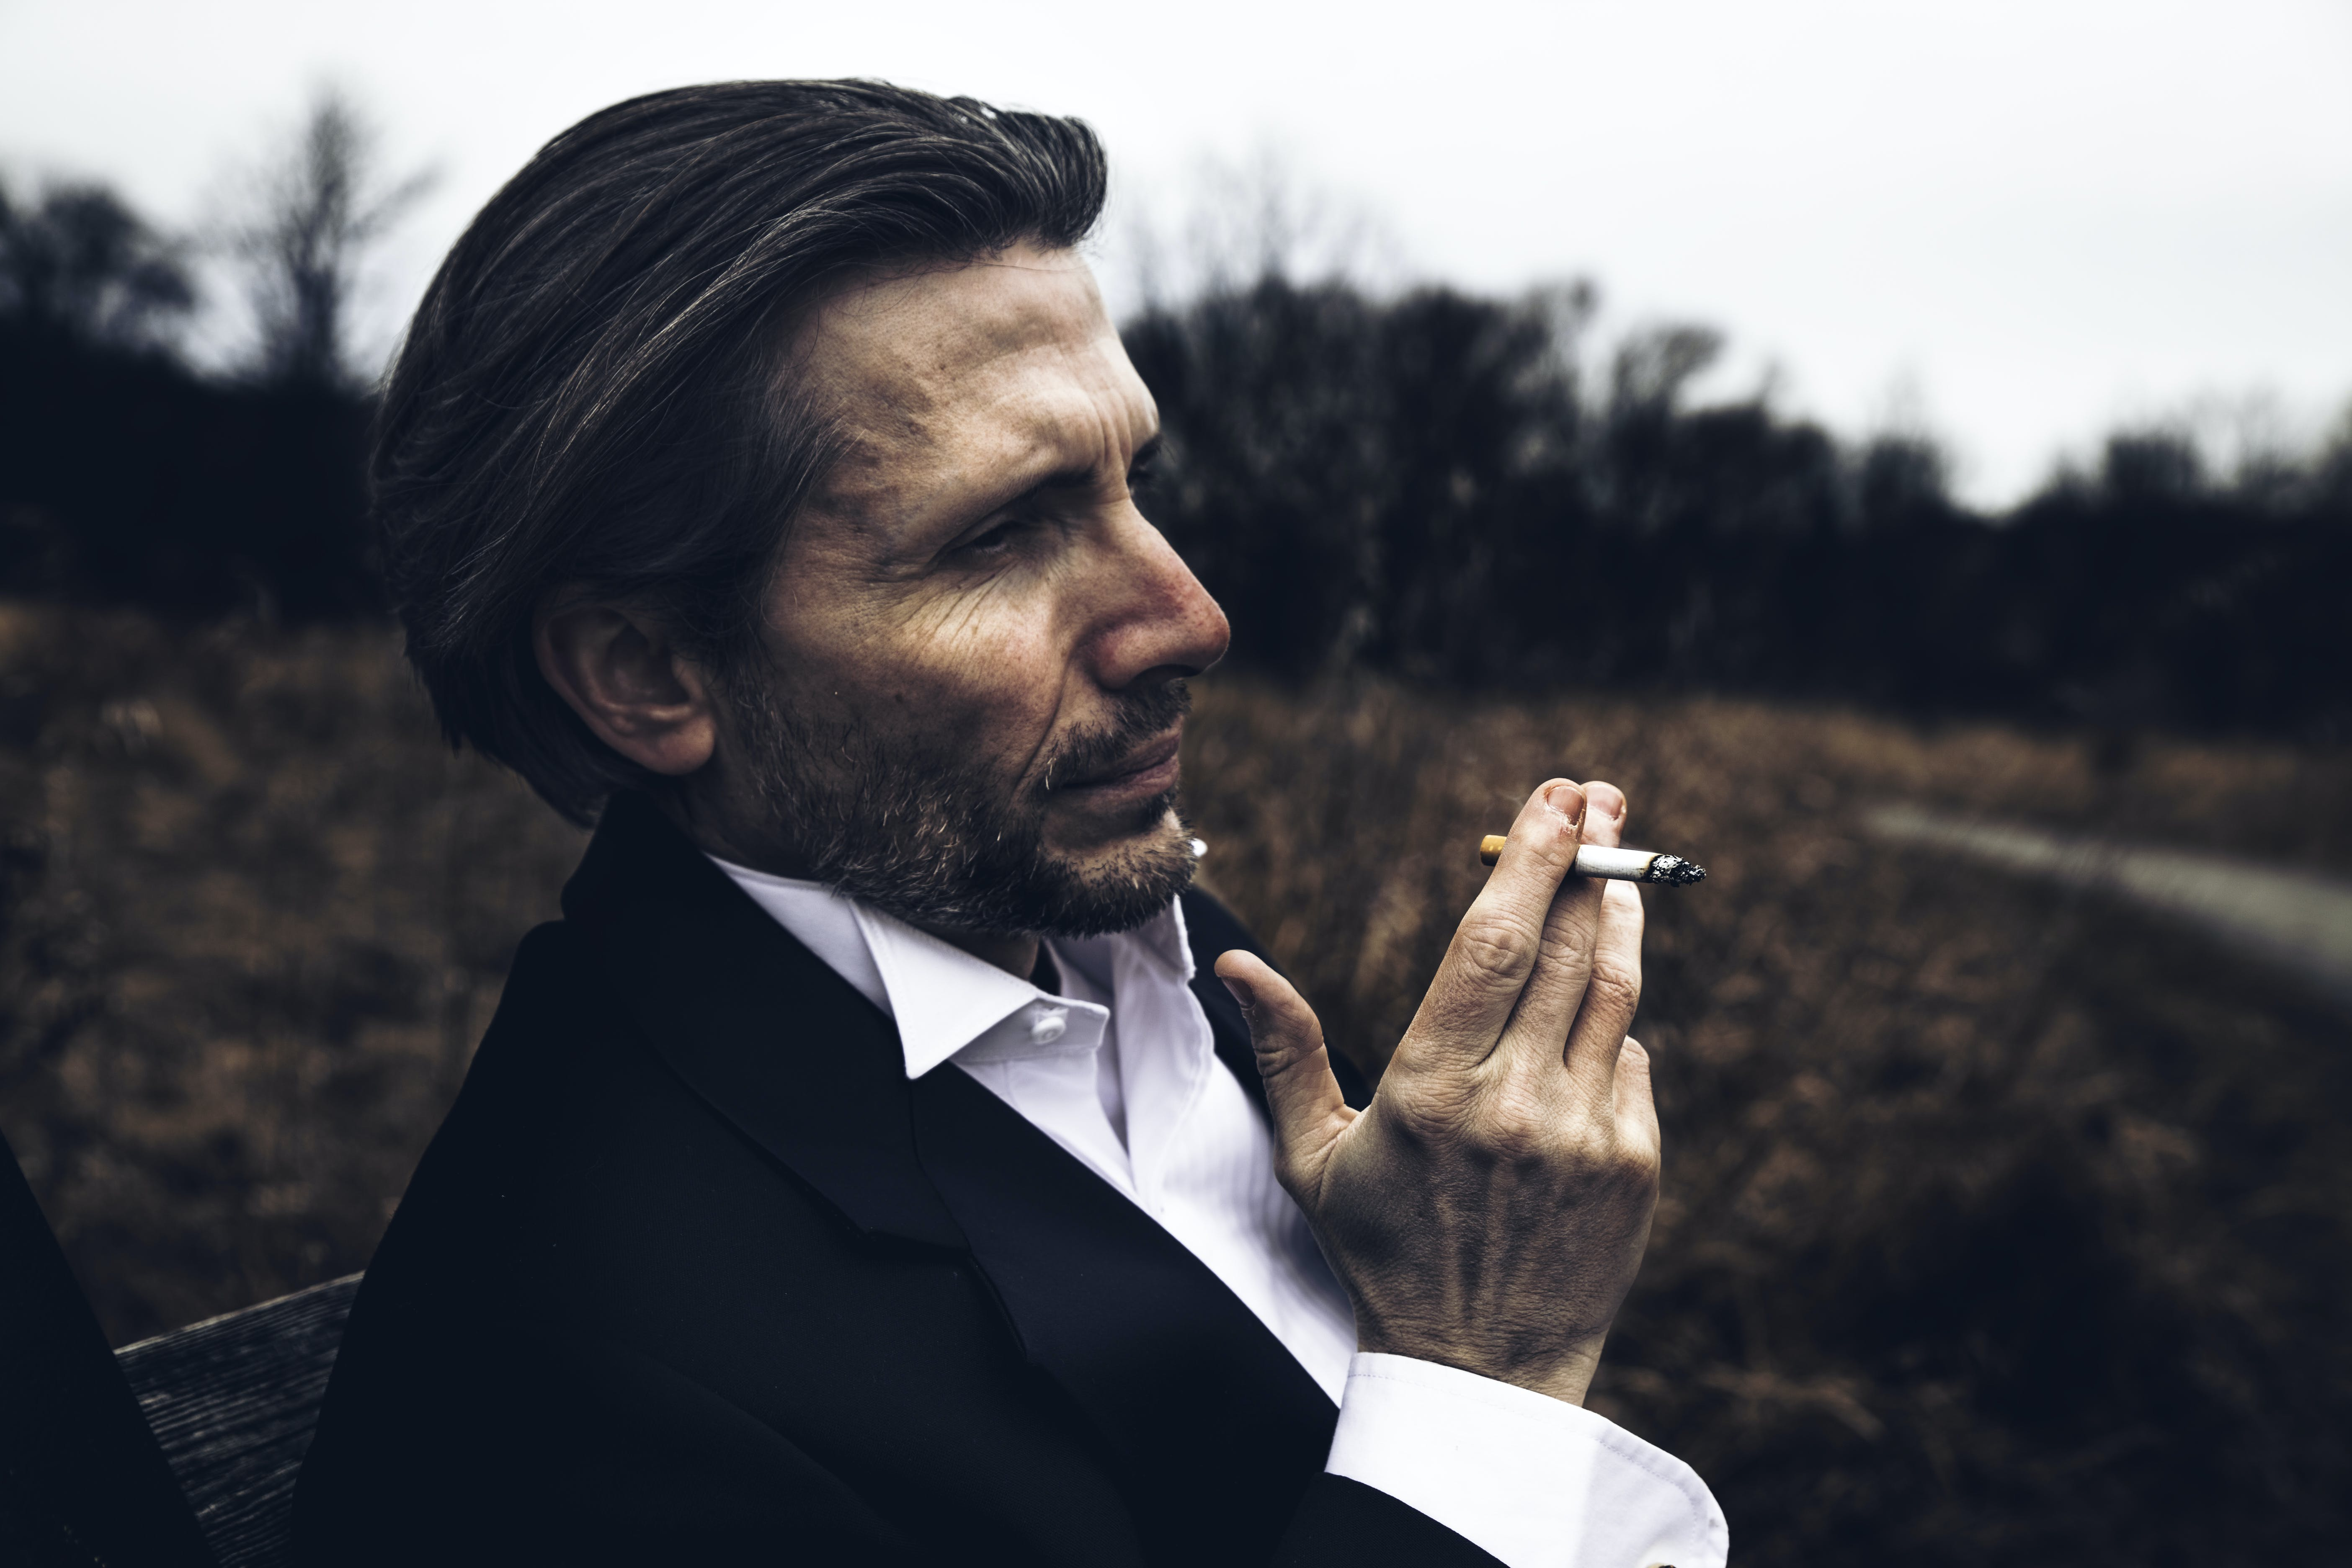 Photo of Man Holding a Cigarette